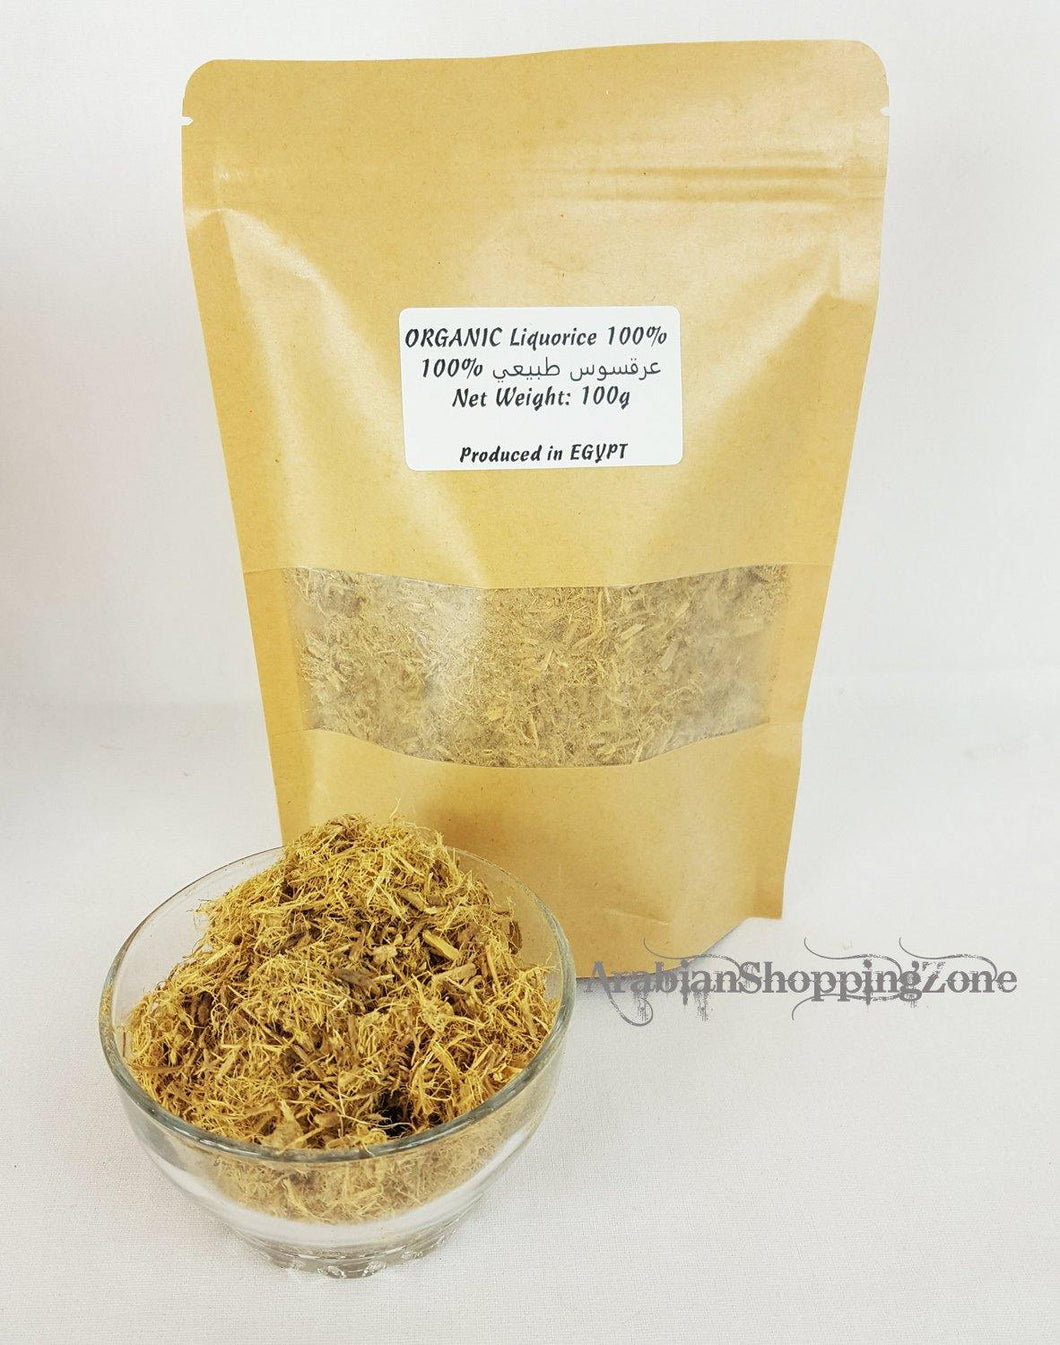 Licorice Root Cut Loose Herbal Tea 100g/3.5oz - Arabian Shopping Zone